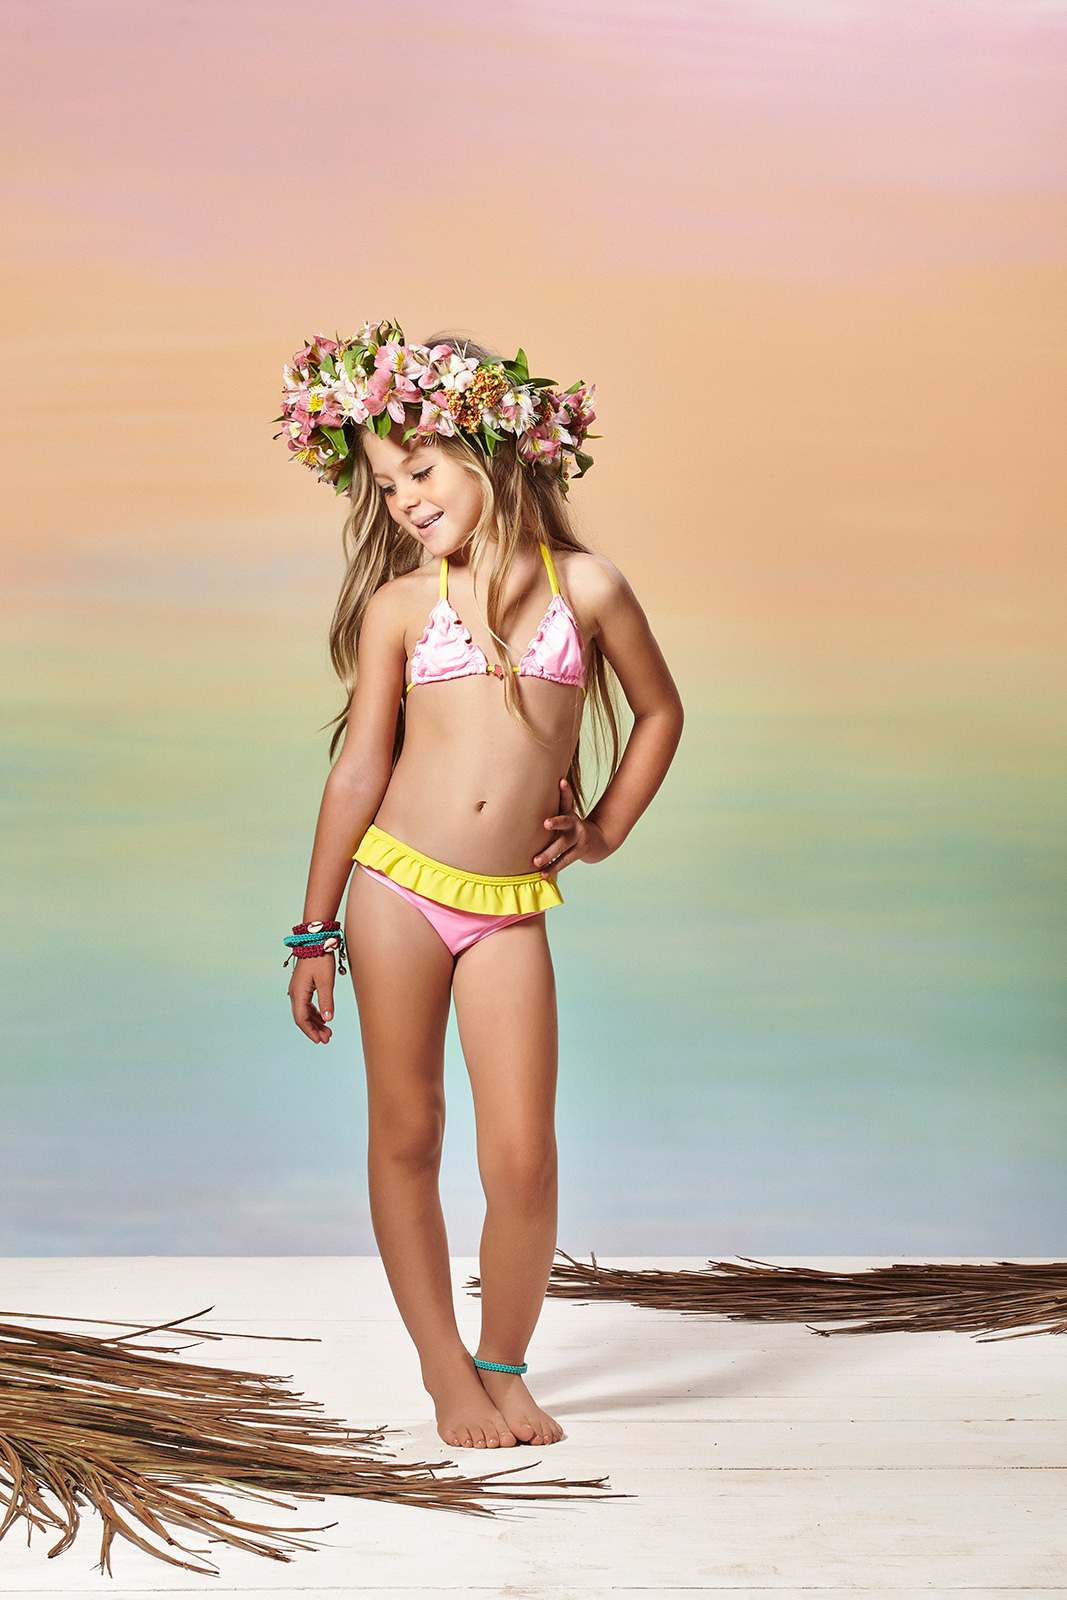 Little Girls Swimsuits Two Piece Bikinis View Image